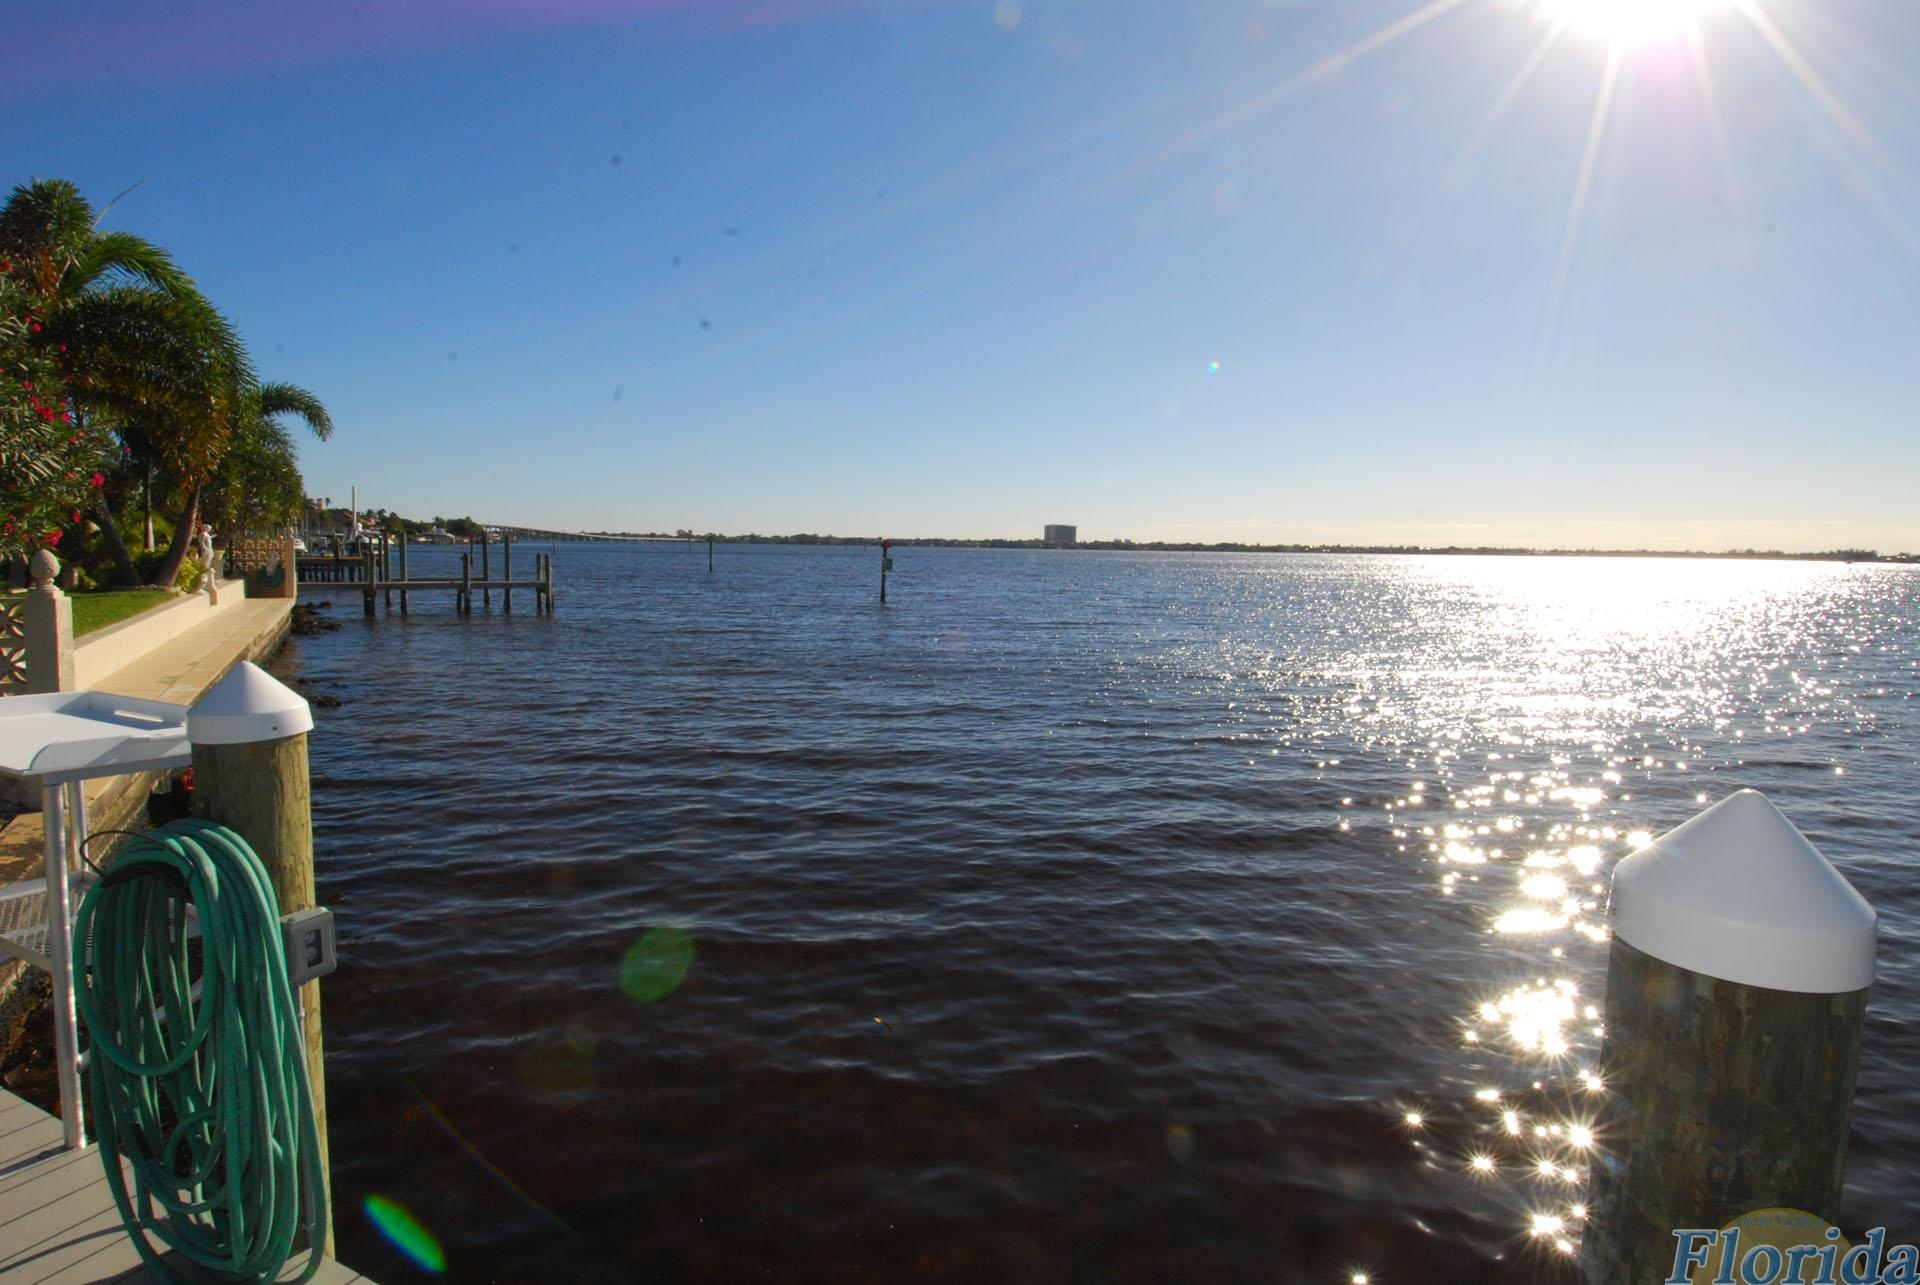 Fantastic view from the dock towards Fort Myers